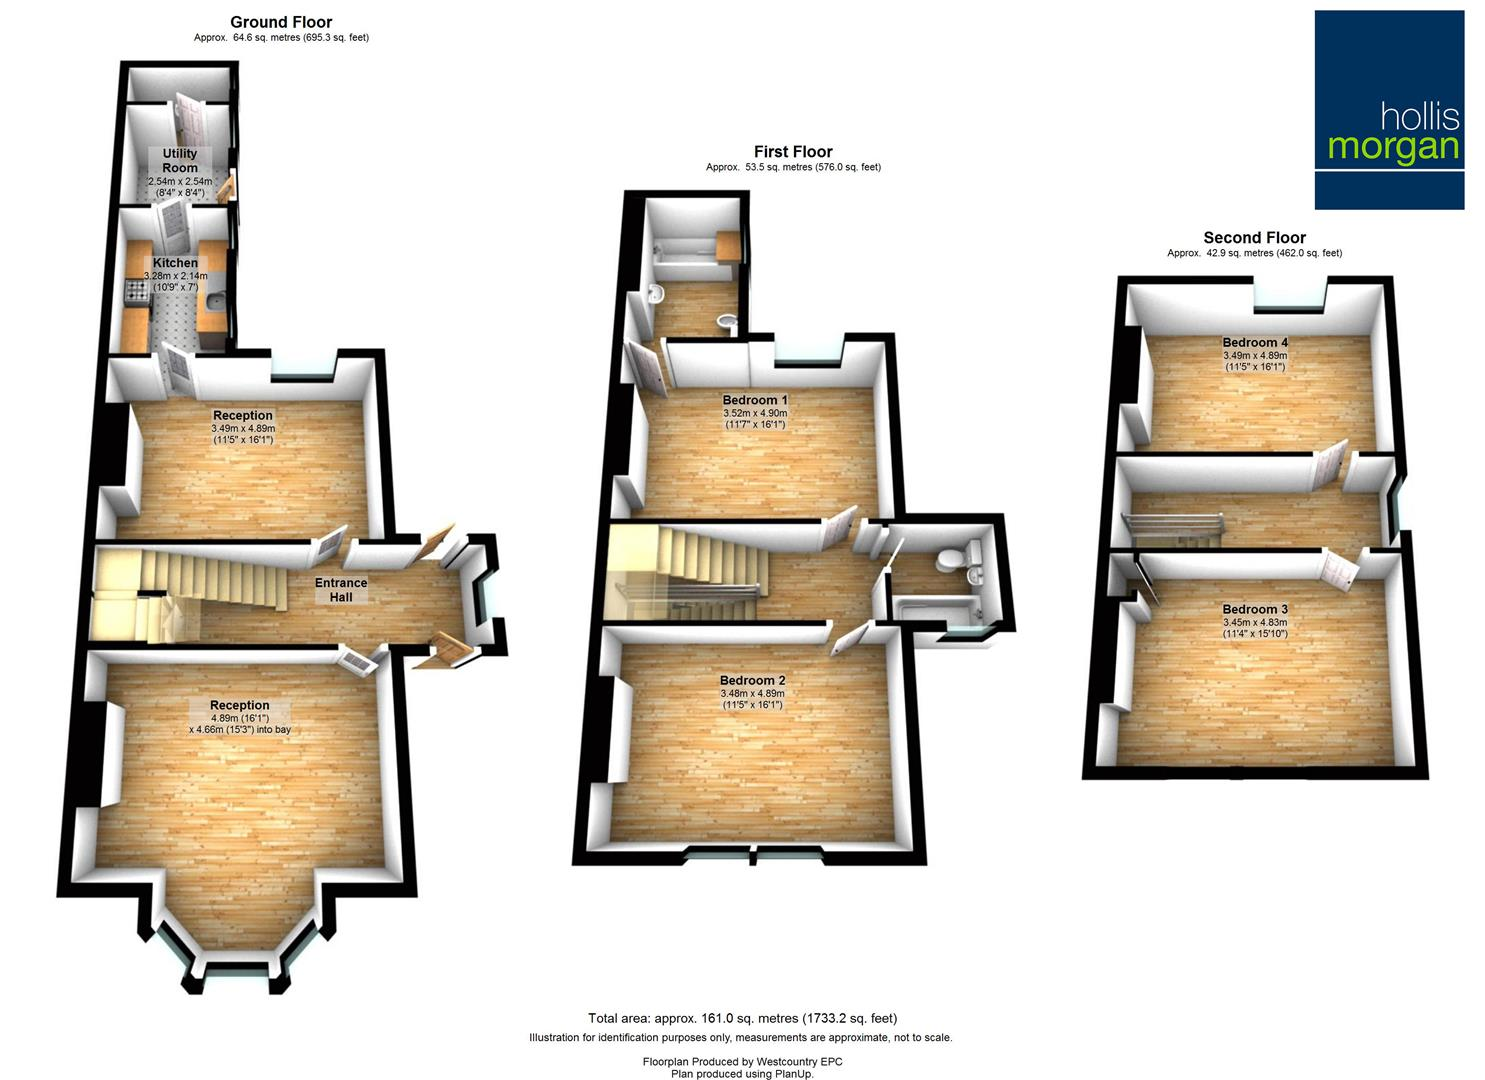 Floorplans For Cotham Brow, Bristol